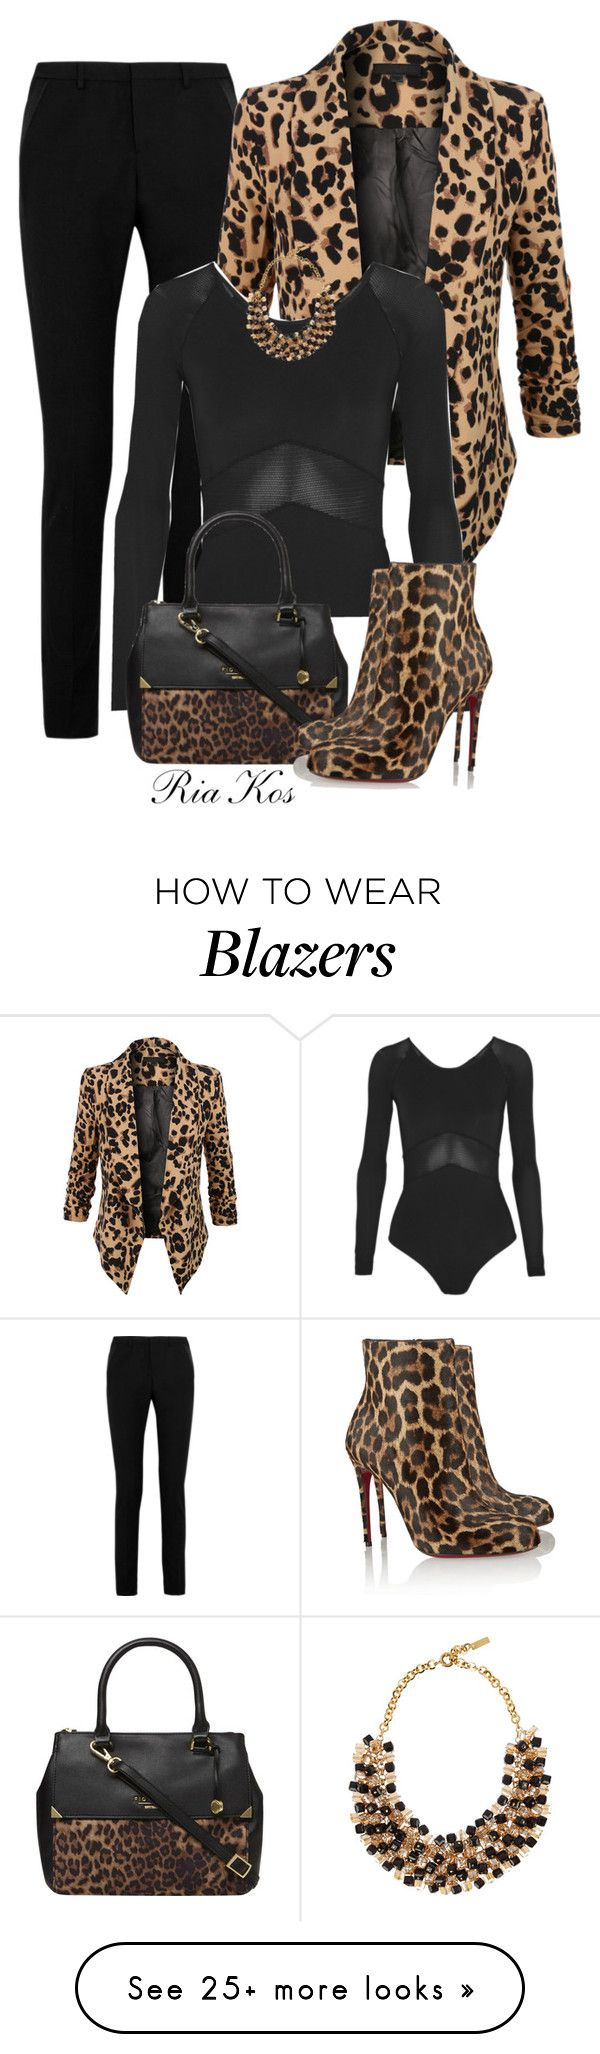 """leopard"" by ria-kos on Polyvore featuring Yves Saint Laurent, LE3NO, Ivy Park, Fiorelli, Etro and Christian Louboutin"